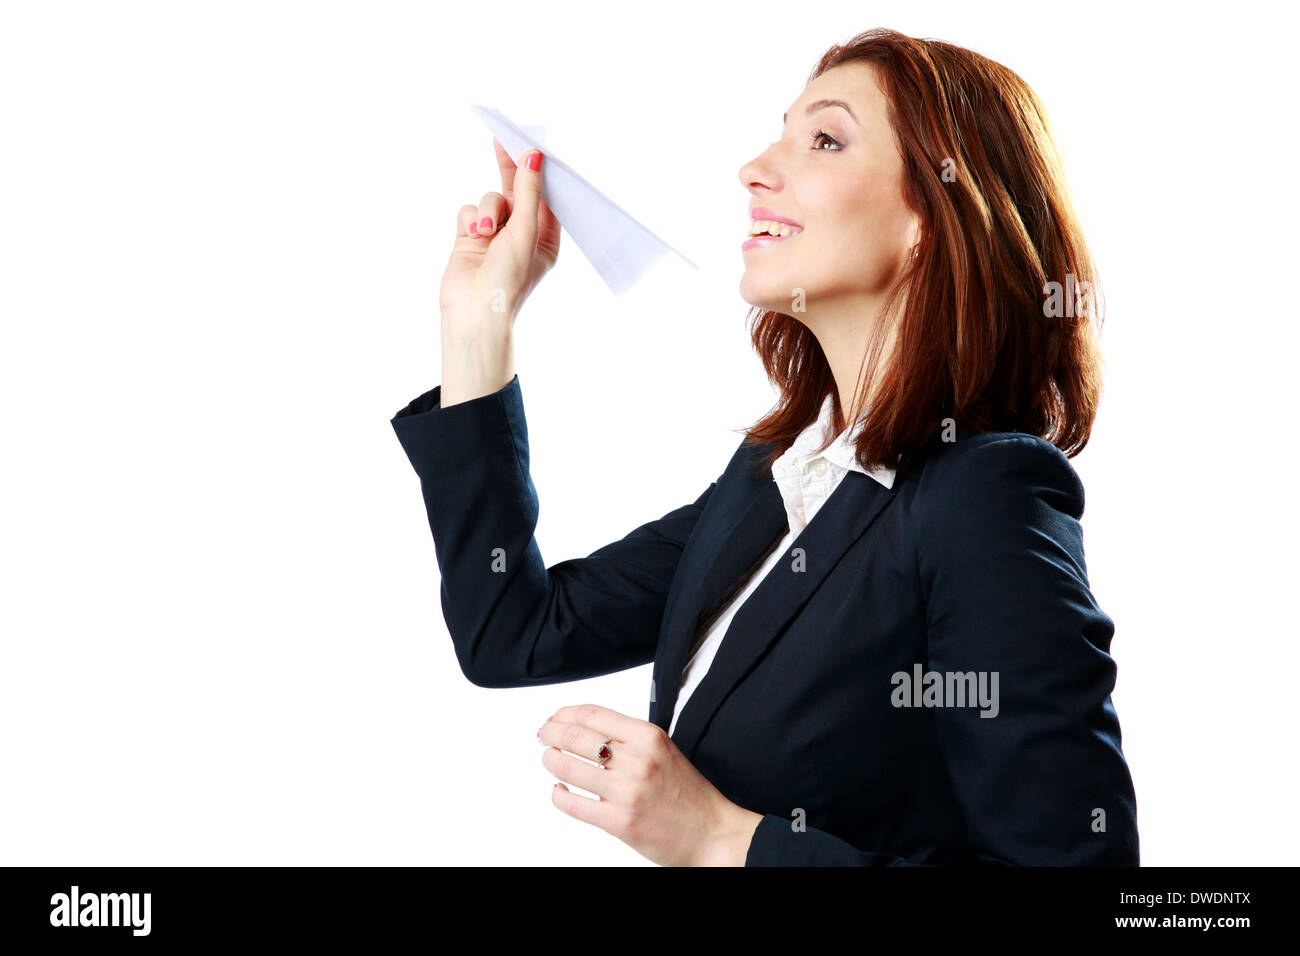 Happy businesswoman throwing paper plane isolated on a white background - Stock Image